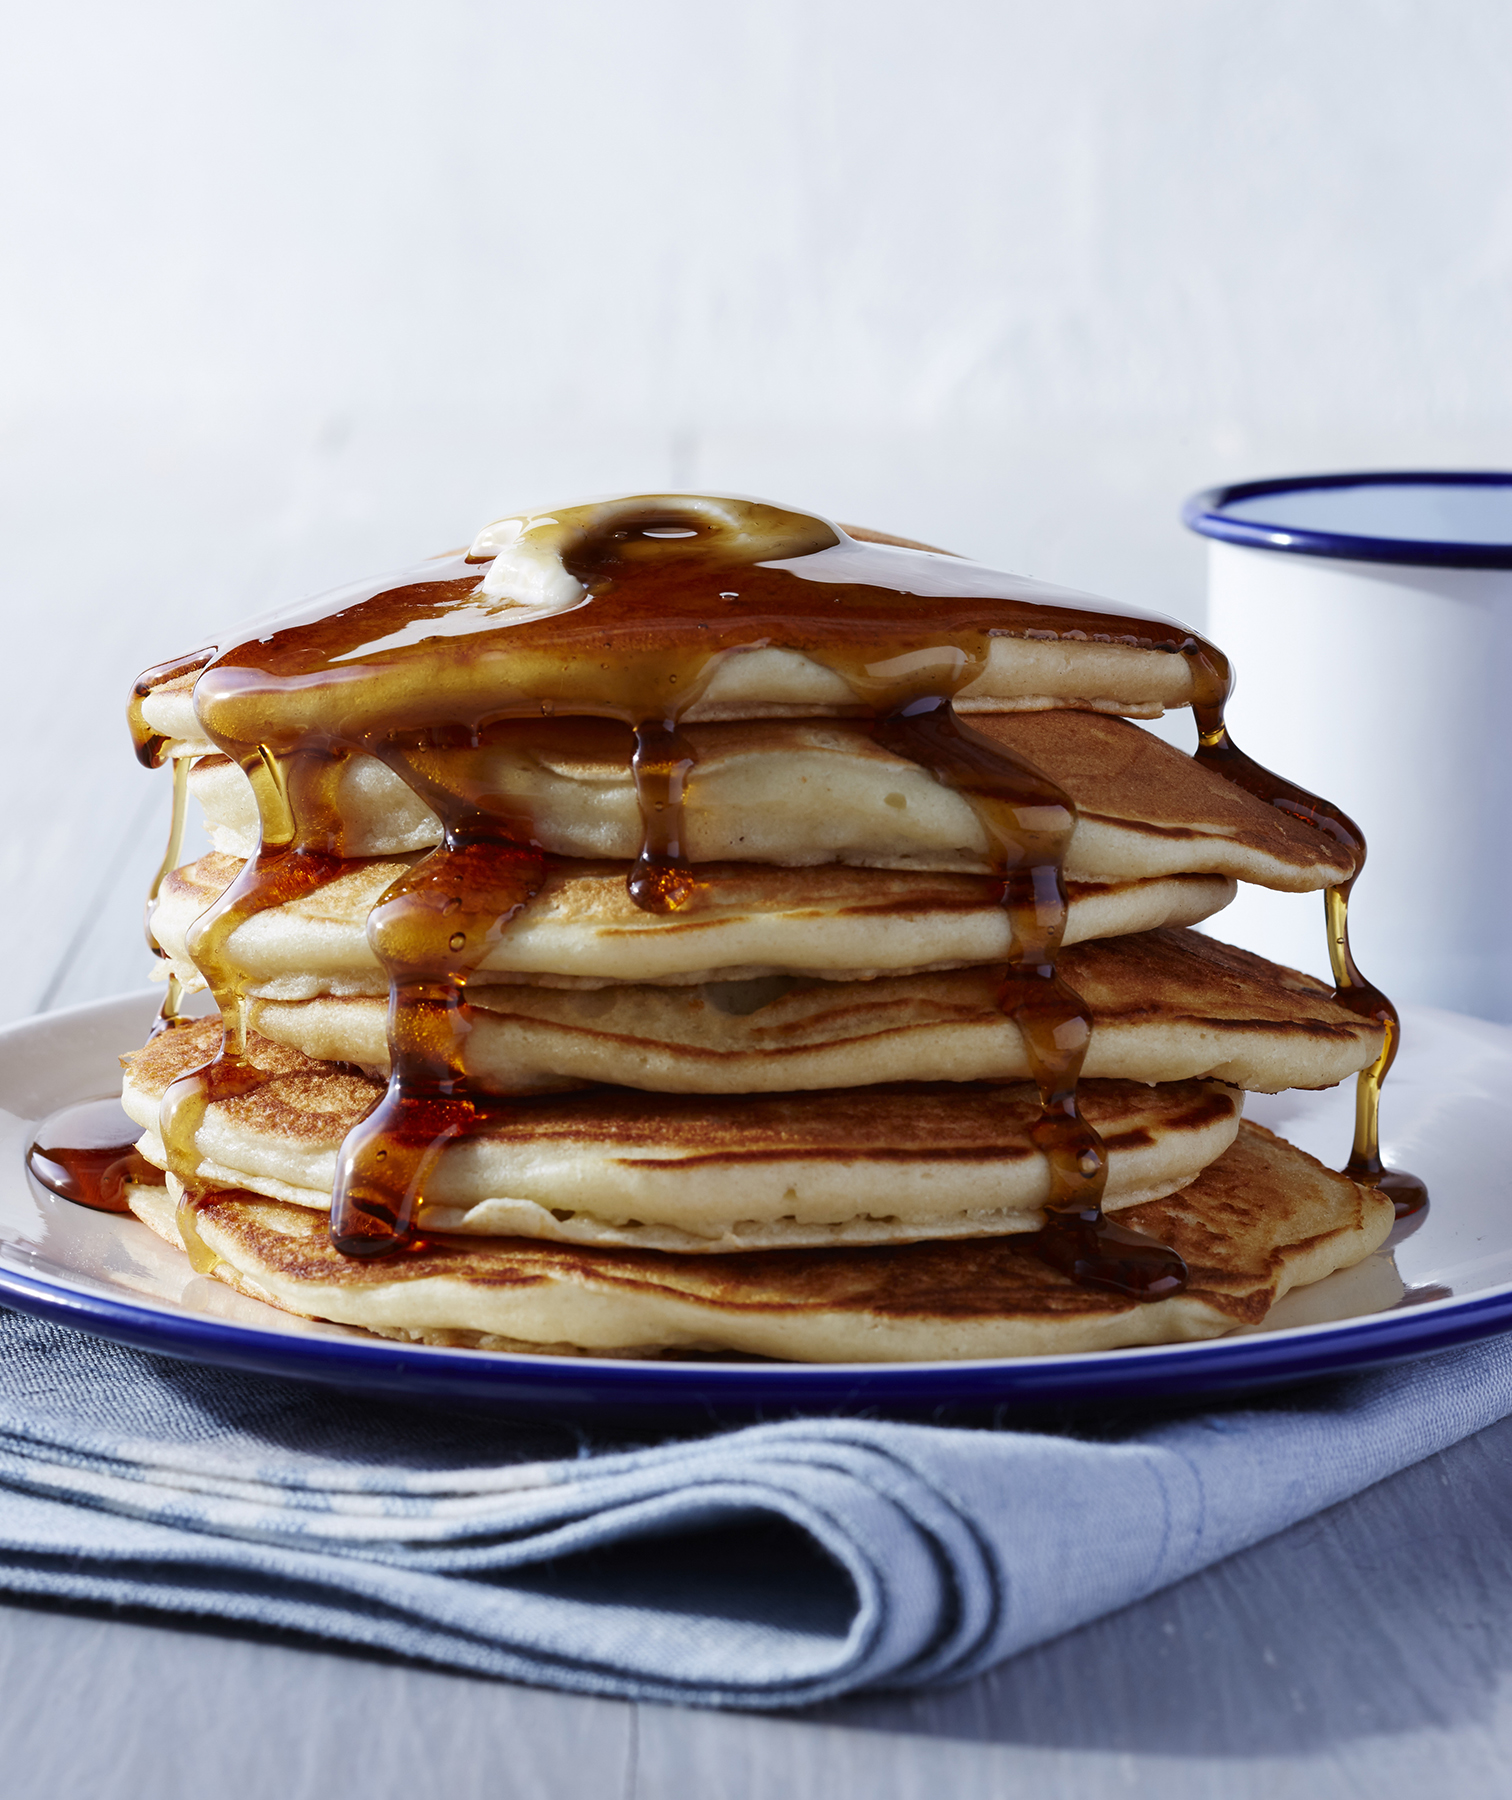 How to Make the Perfect Pancake, According to Science